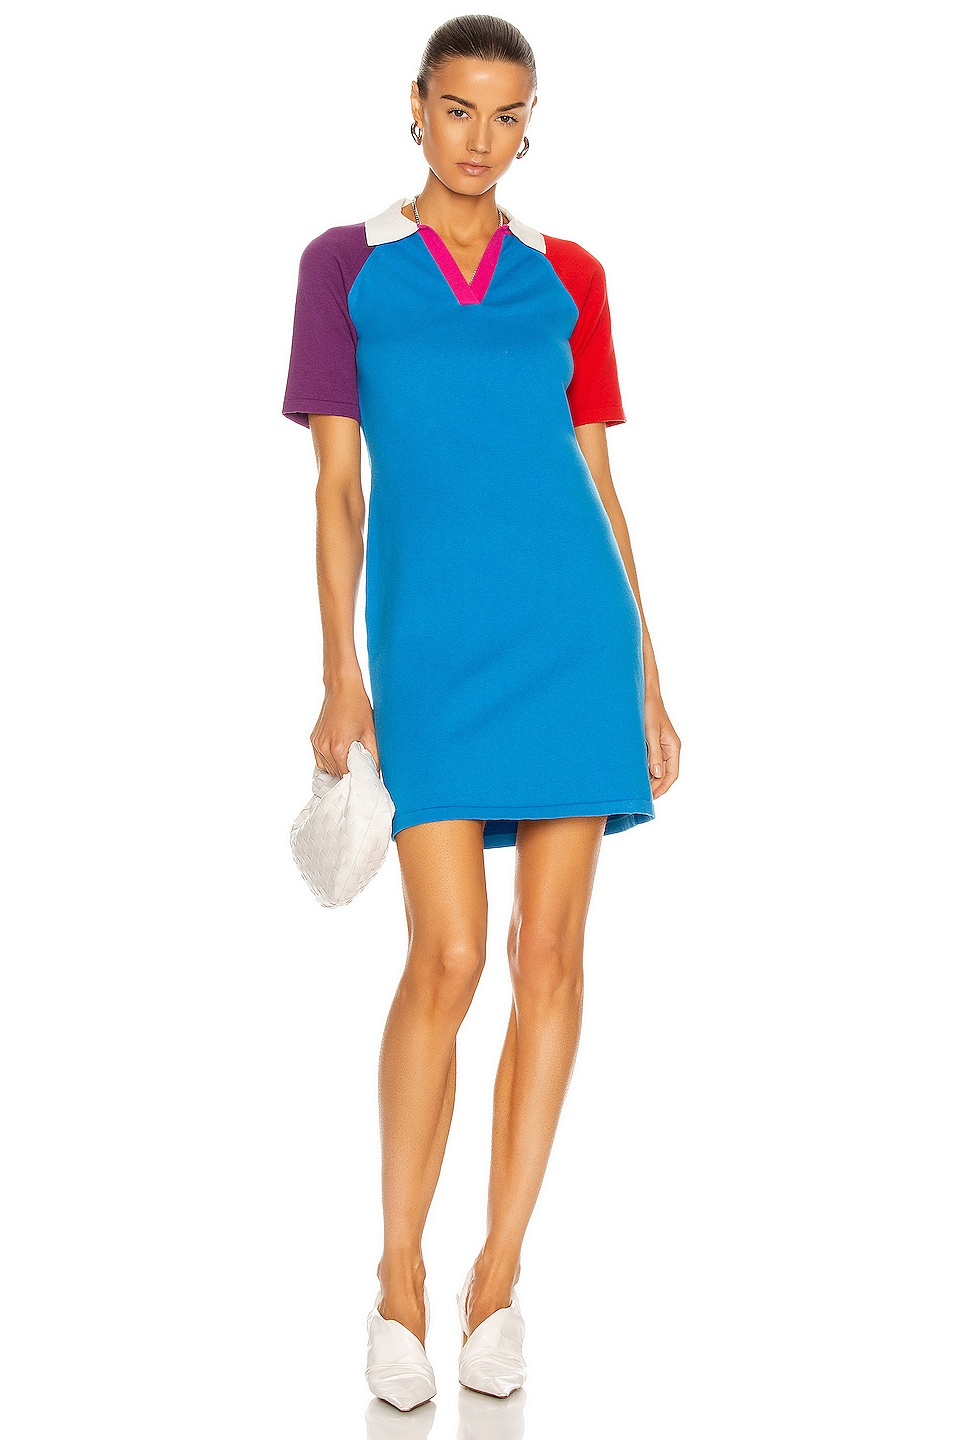 Image 1 of Victor Glemaud Color Block Polo Dress in Purple Multi